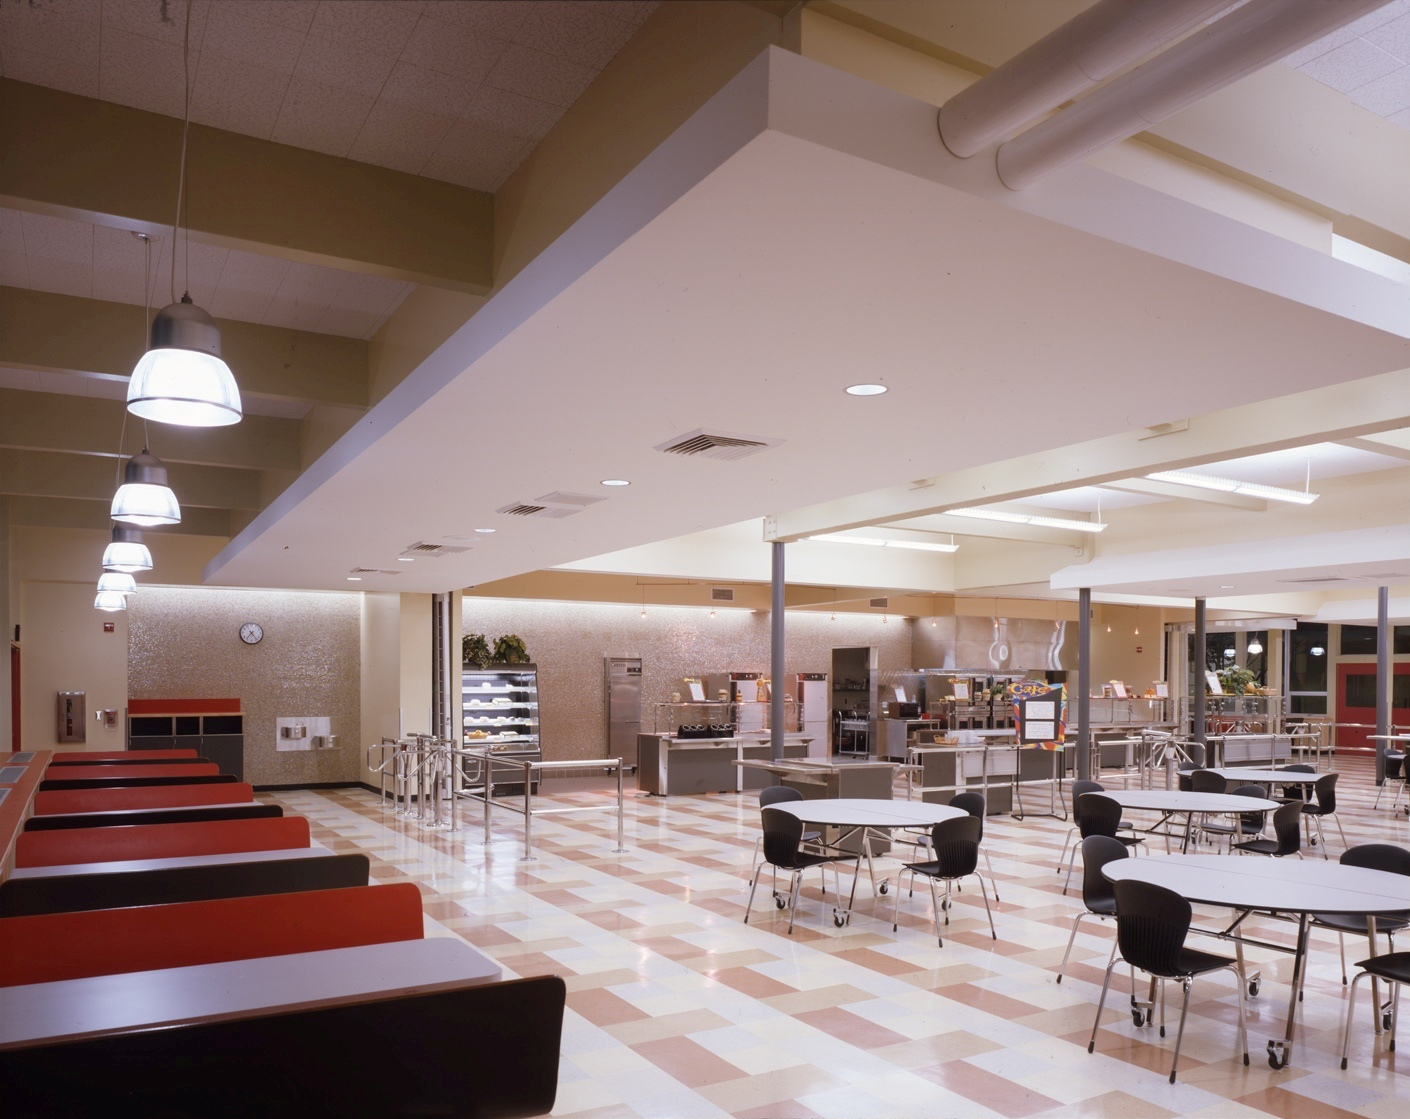 North Eugene High School Cafeteria